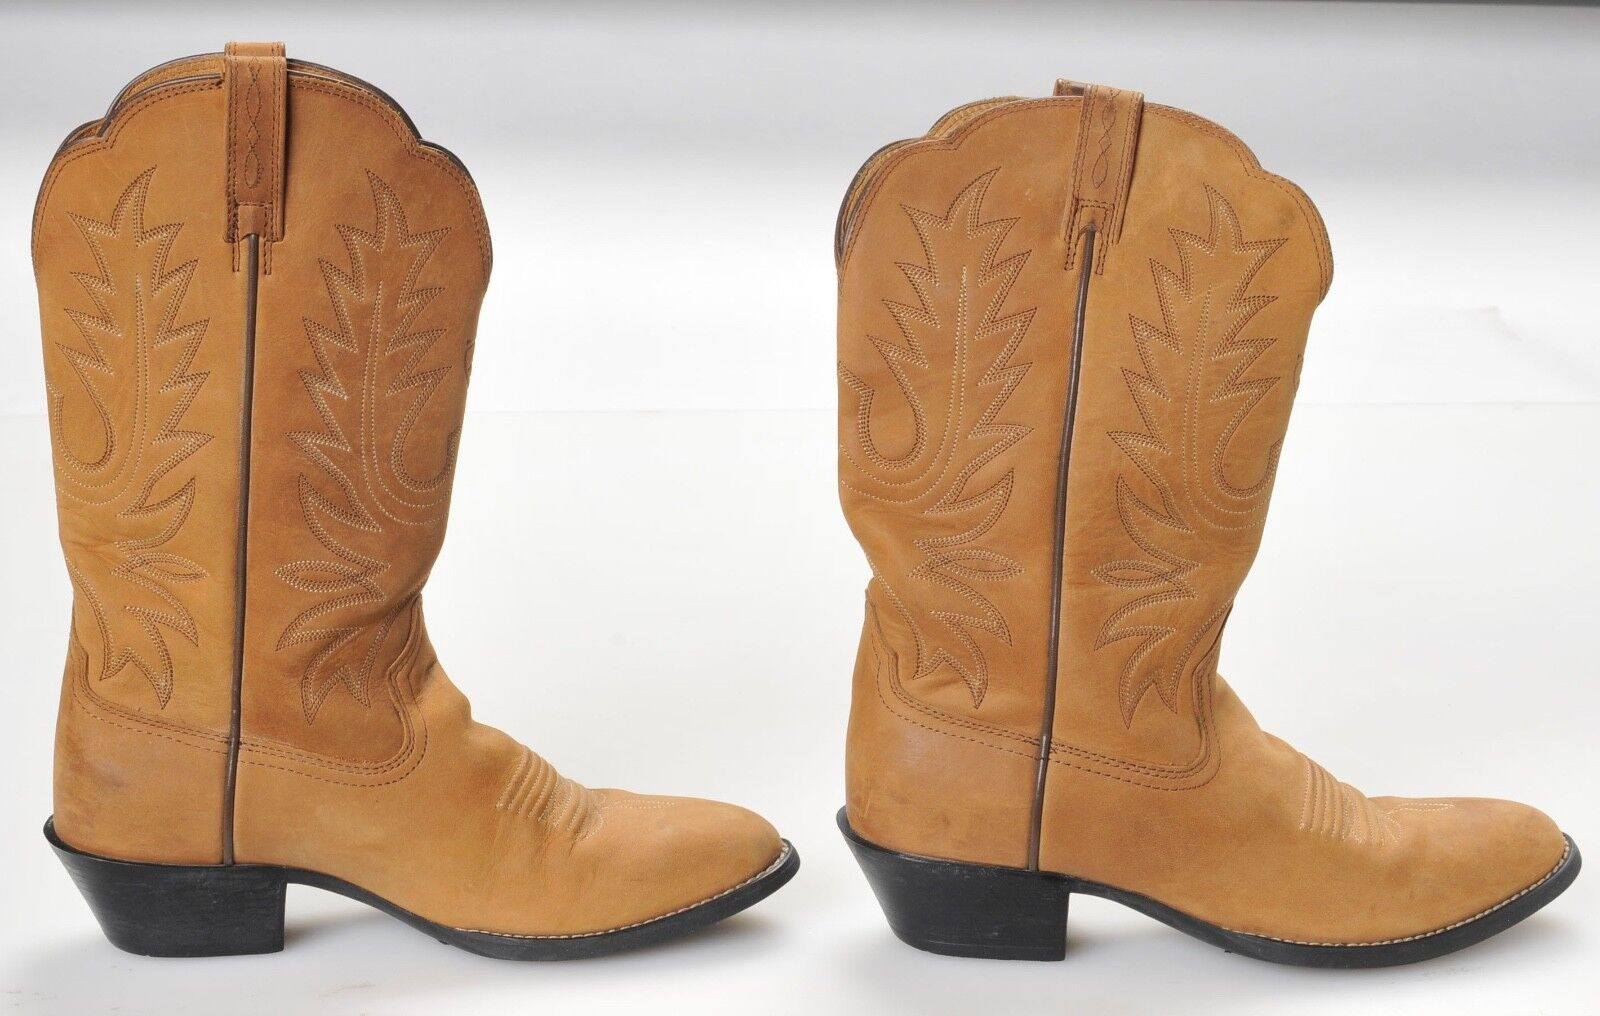 Ariat Heritage Cowboy Boots 15725 Women's 7B Tan Leather Western